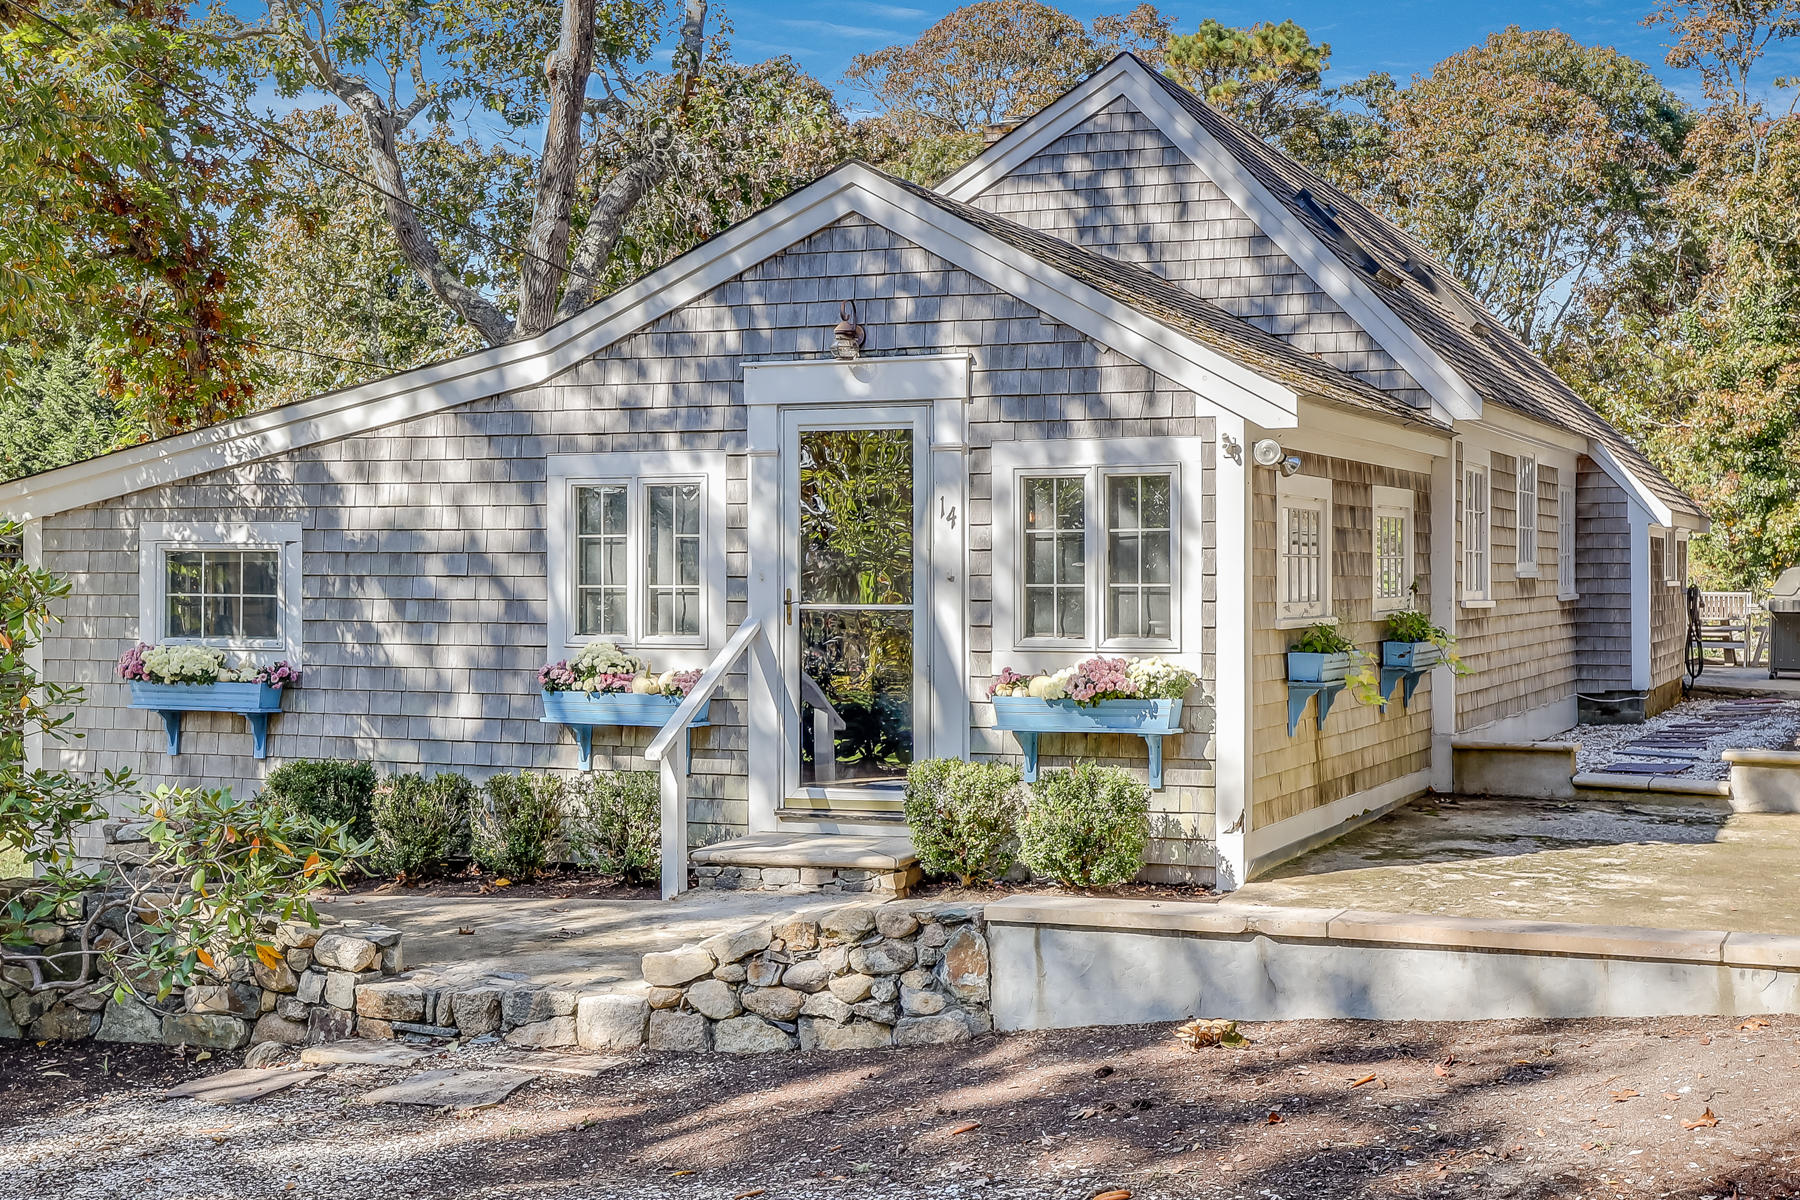 14 Walther Road, Harwich Port MA, 02646 details